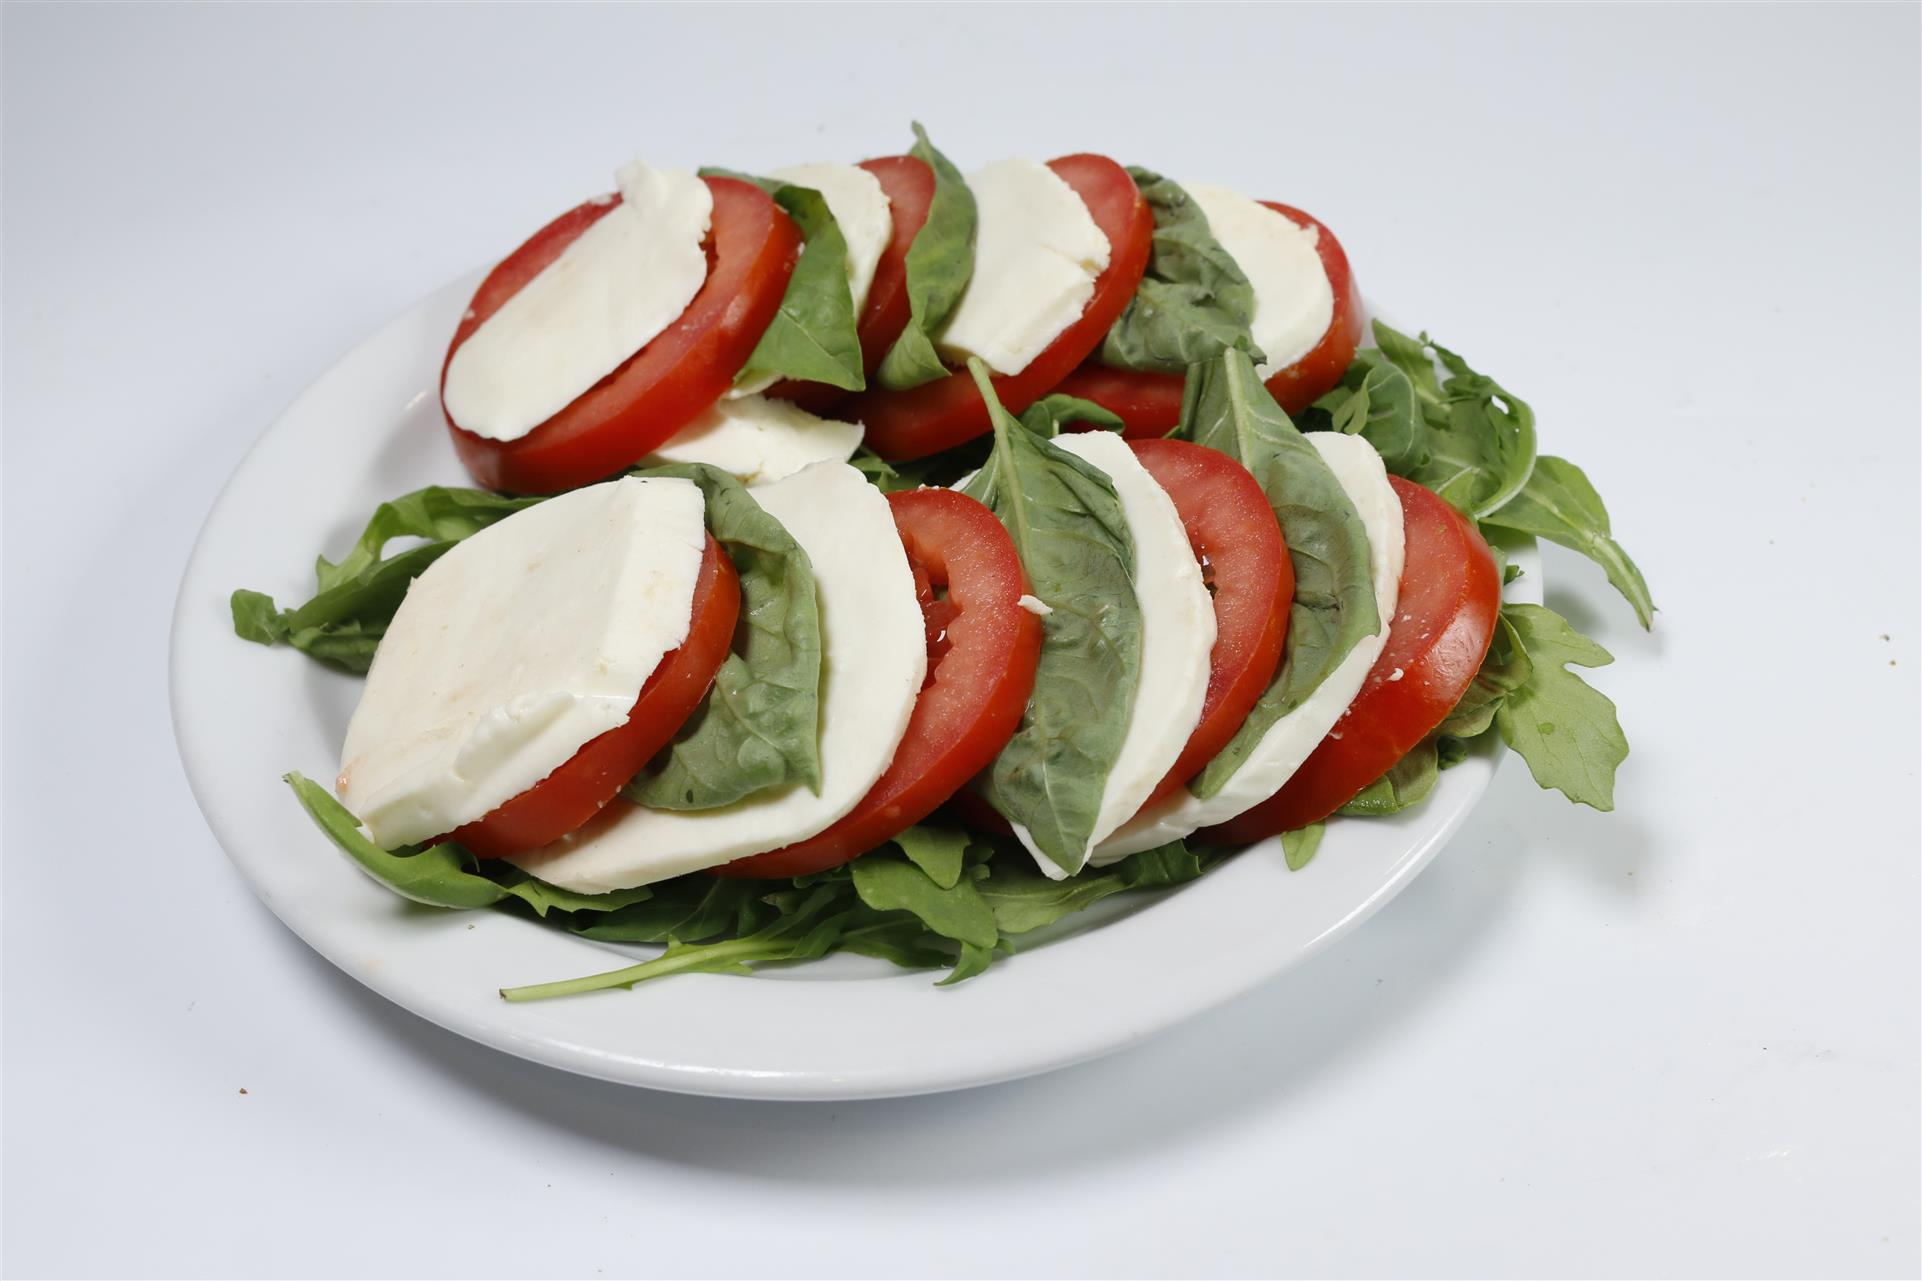 Mozzarella di buffalo, Roma tomato, fresh basil on bed of arugula.